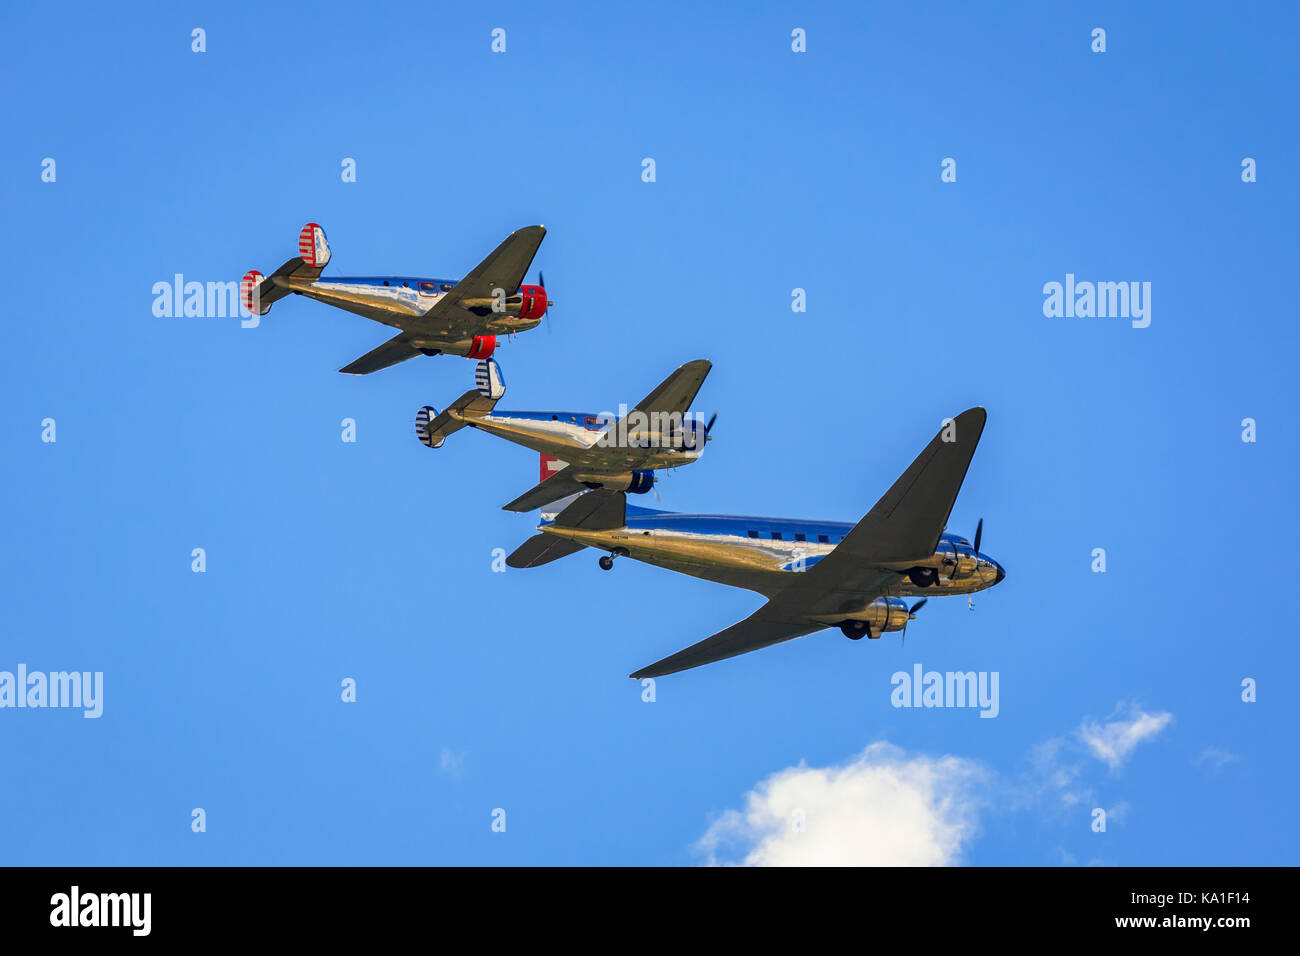 Breitling classic formation, Beech-18 and Douglas DC-3, Sion Airshow, Sion, Valais, Switzerland - Stock Image